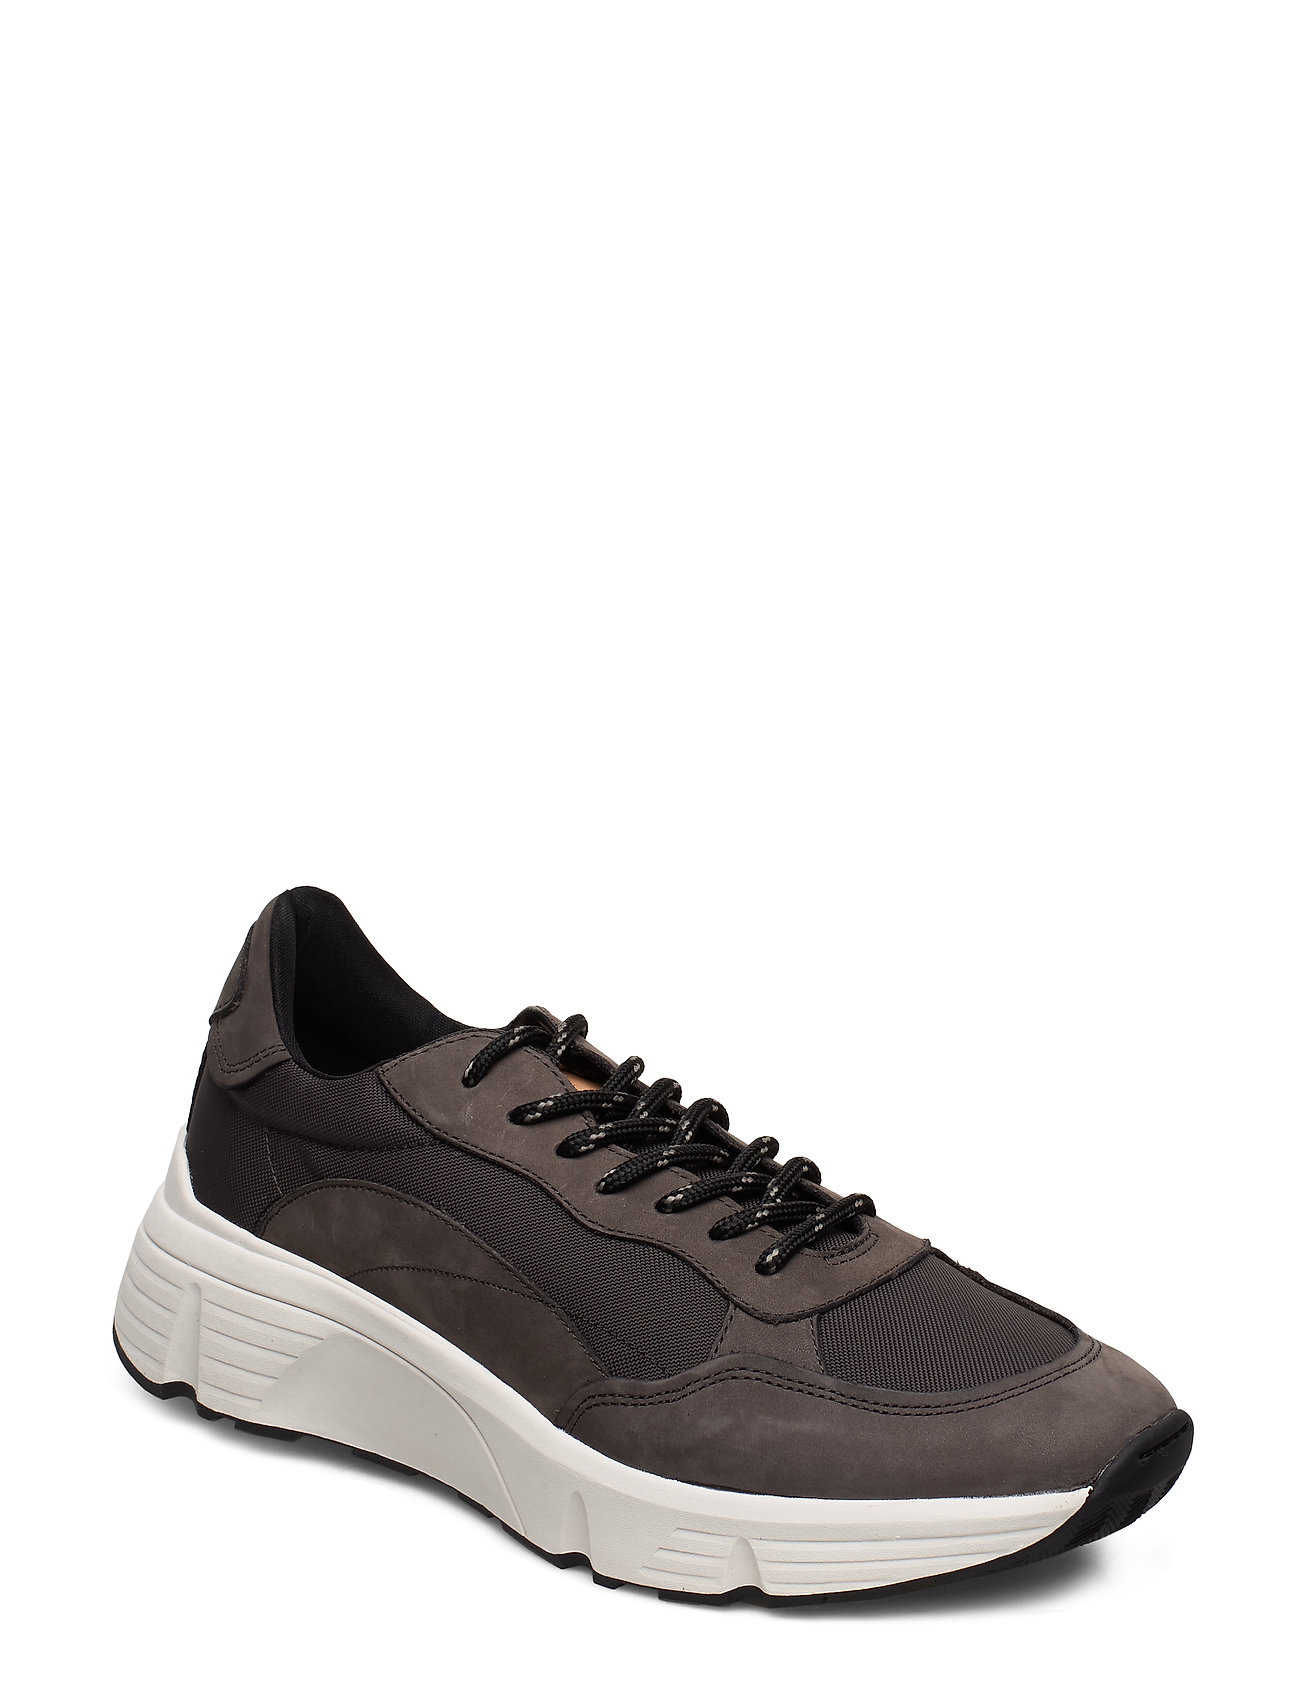 Image of Quincy Low-top Sneakers Grå VAGABOND (3357411265)